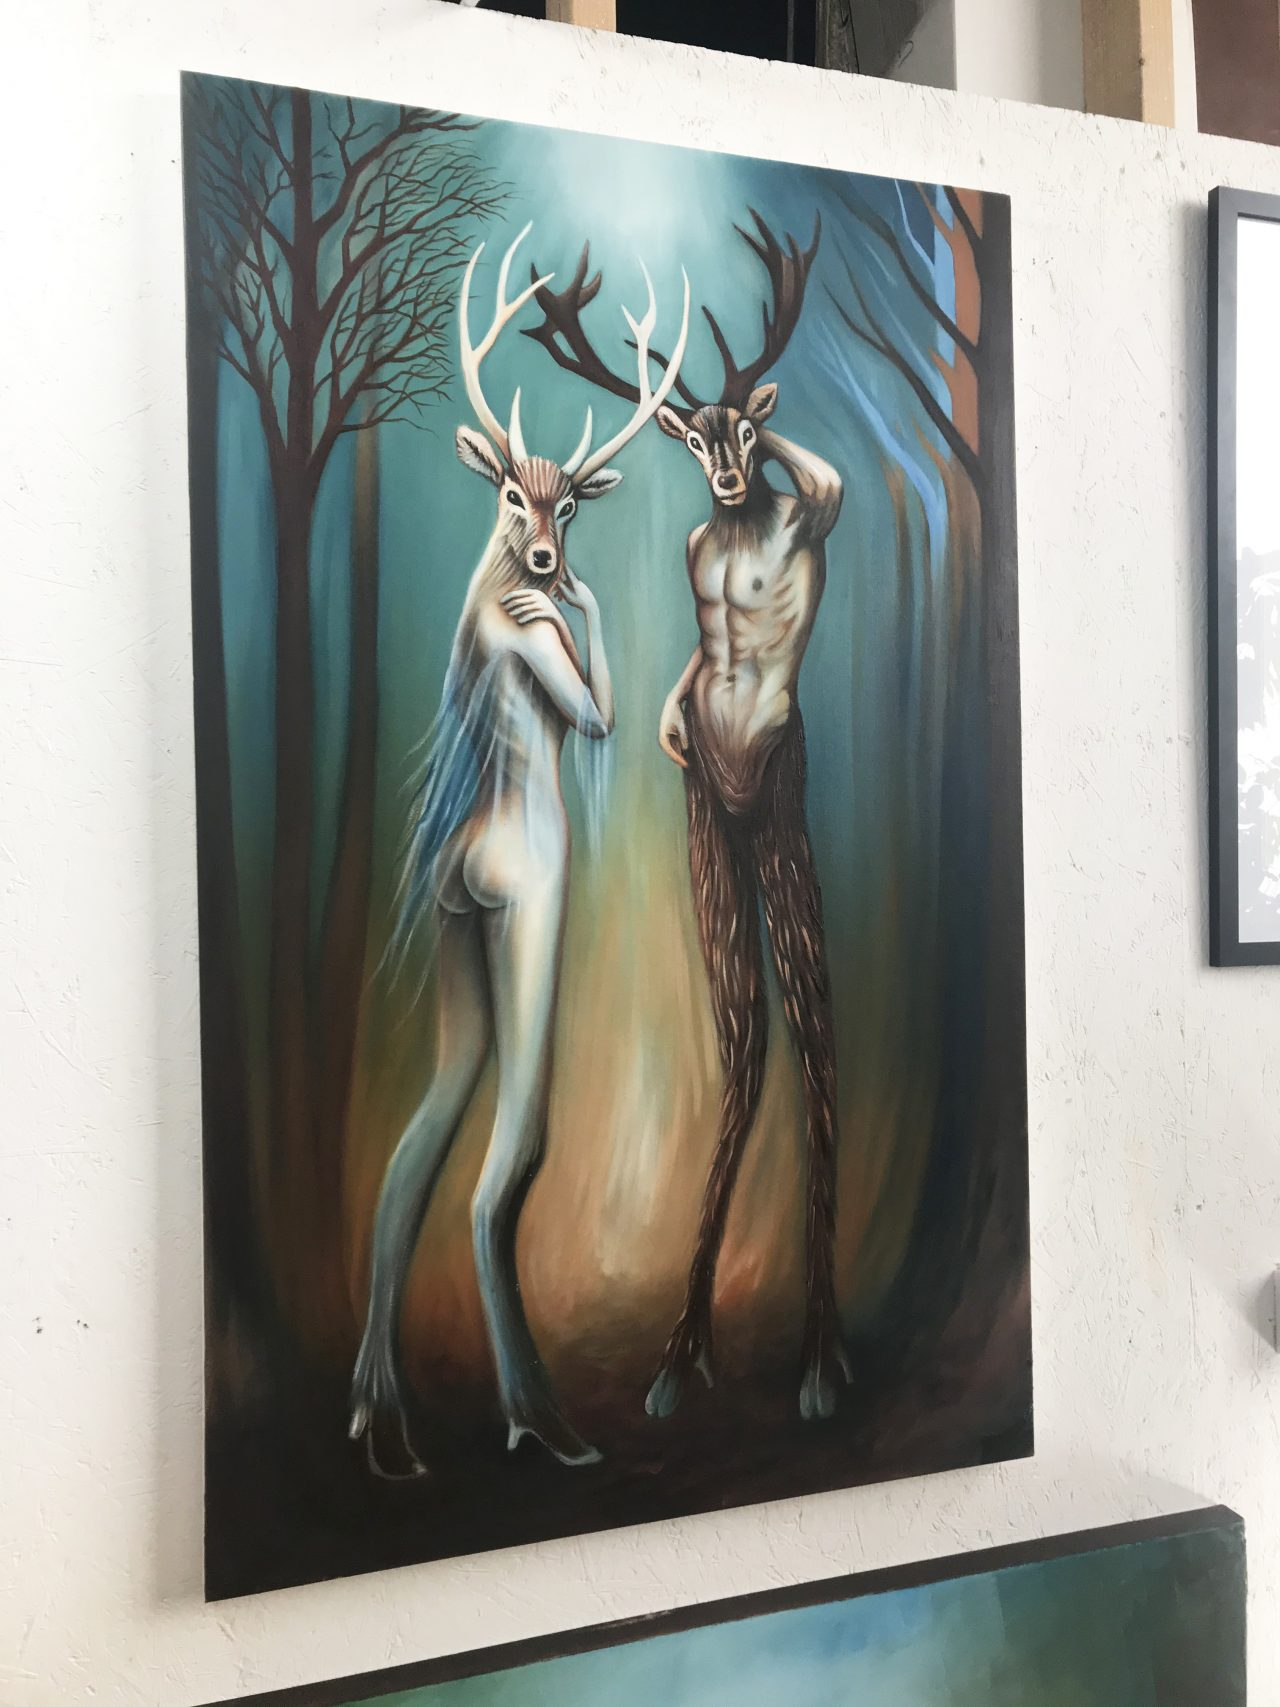 Exiles in Eden - contemporary oil painting of anthropomorphic human hybrid deer and stag in an enchanted forest